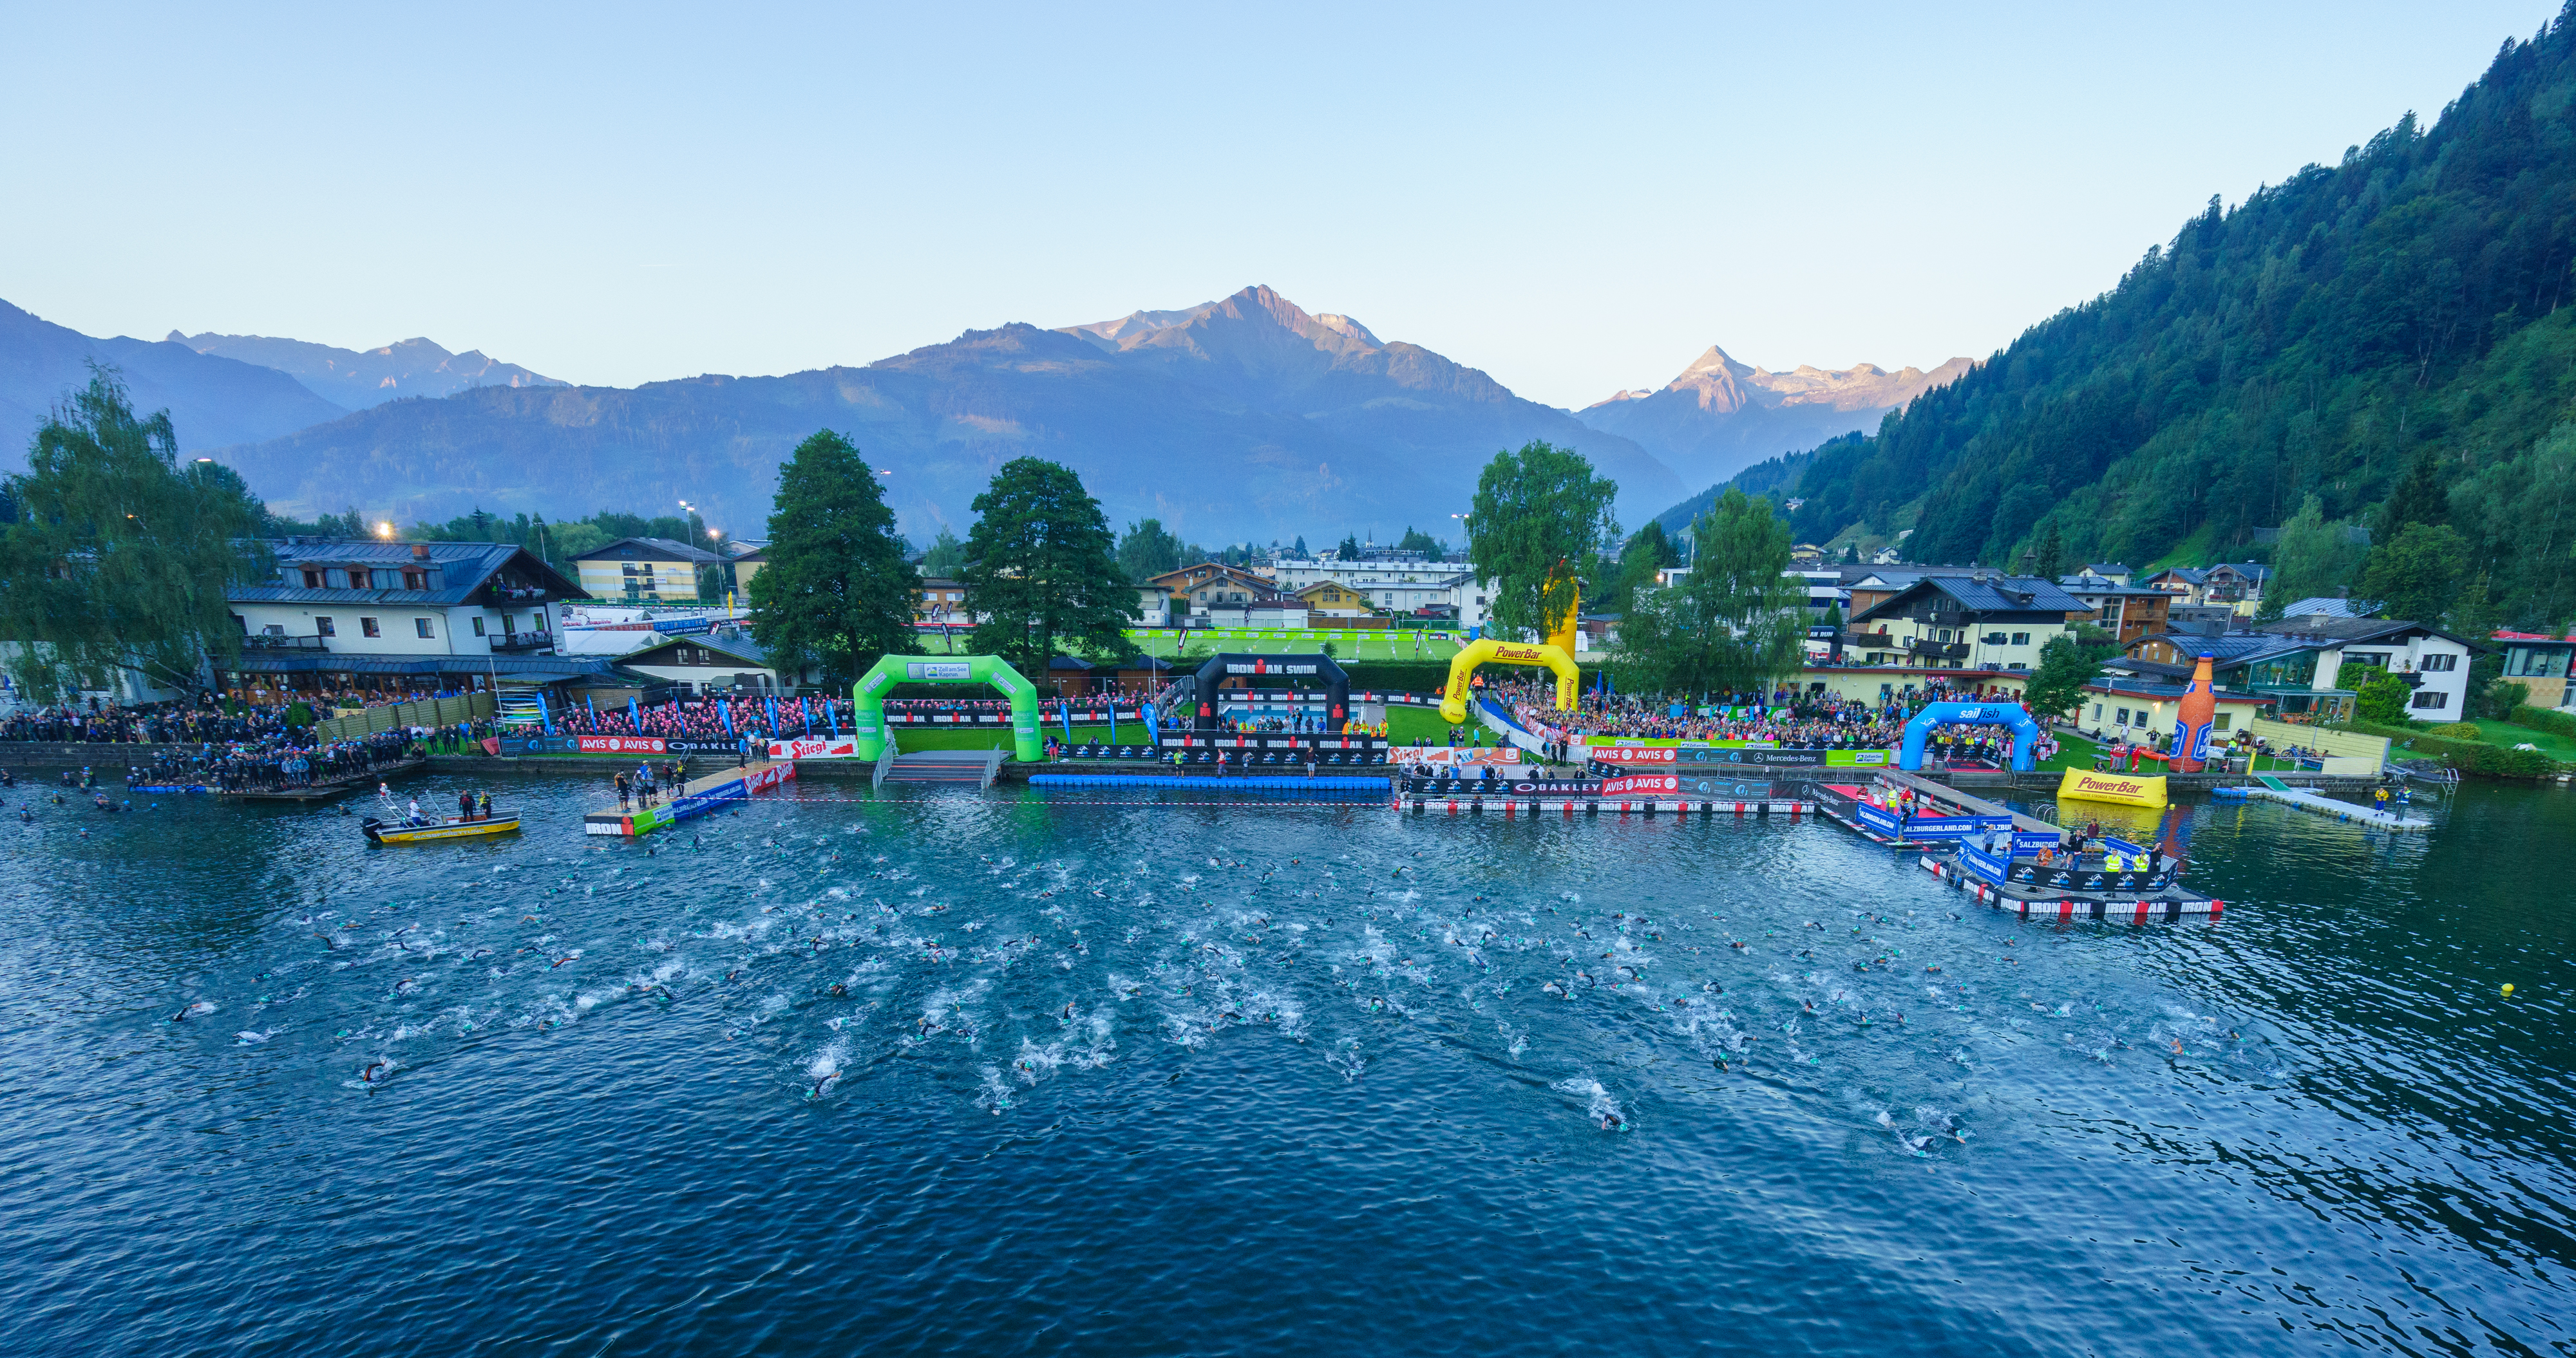 The 6th Ironman is staged in Zell am See-Kaprun on THE triathlon event in the Salzburger Land with swimming, running and cycling in beautiful nature.